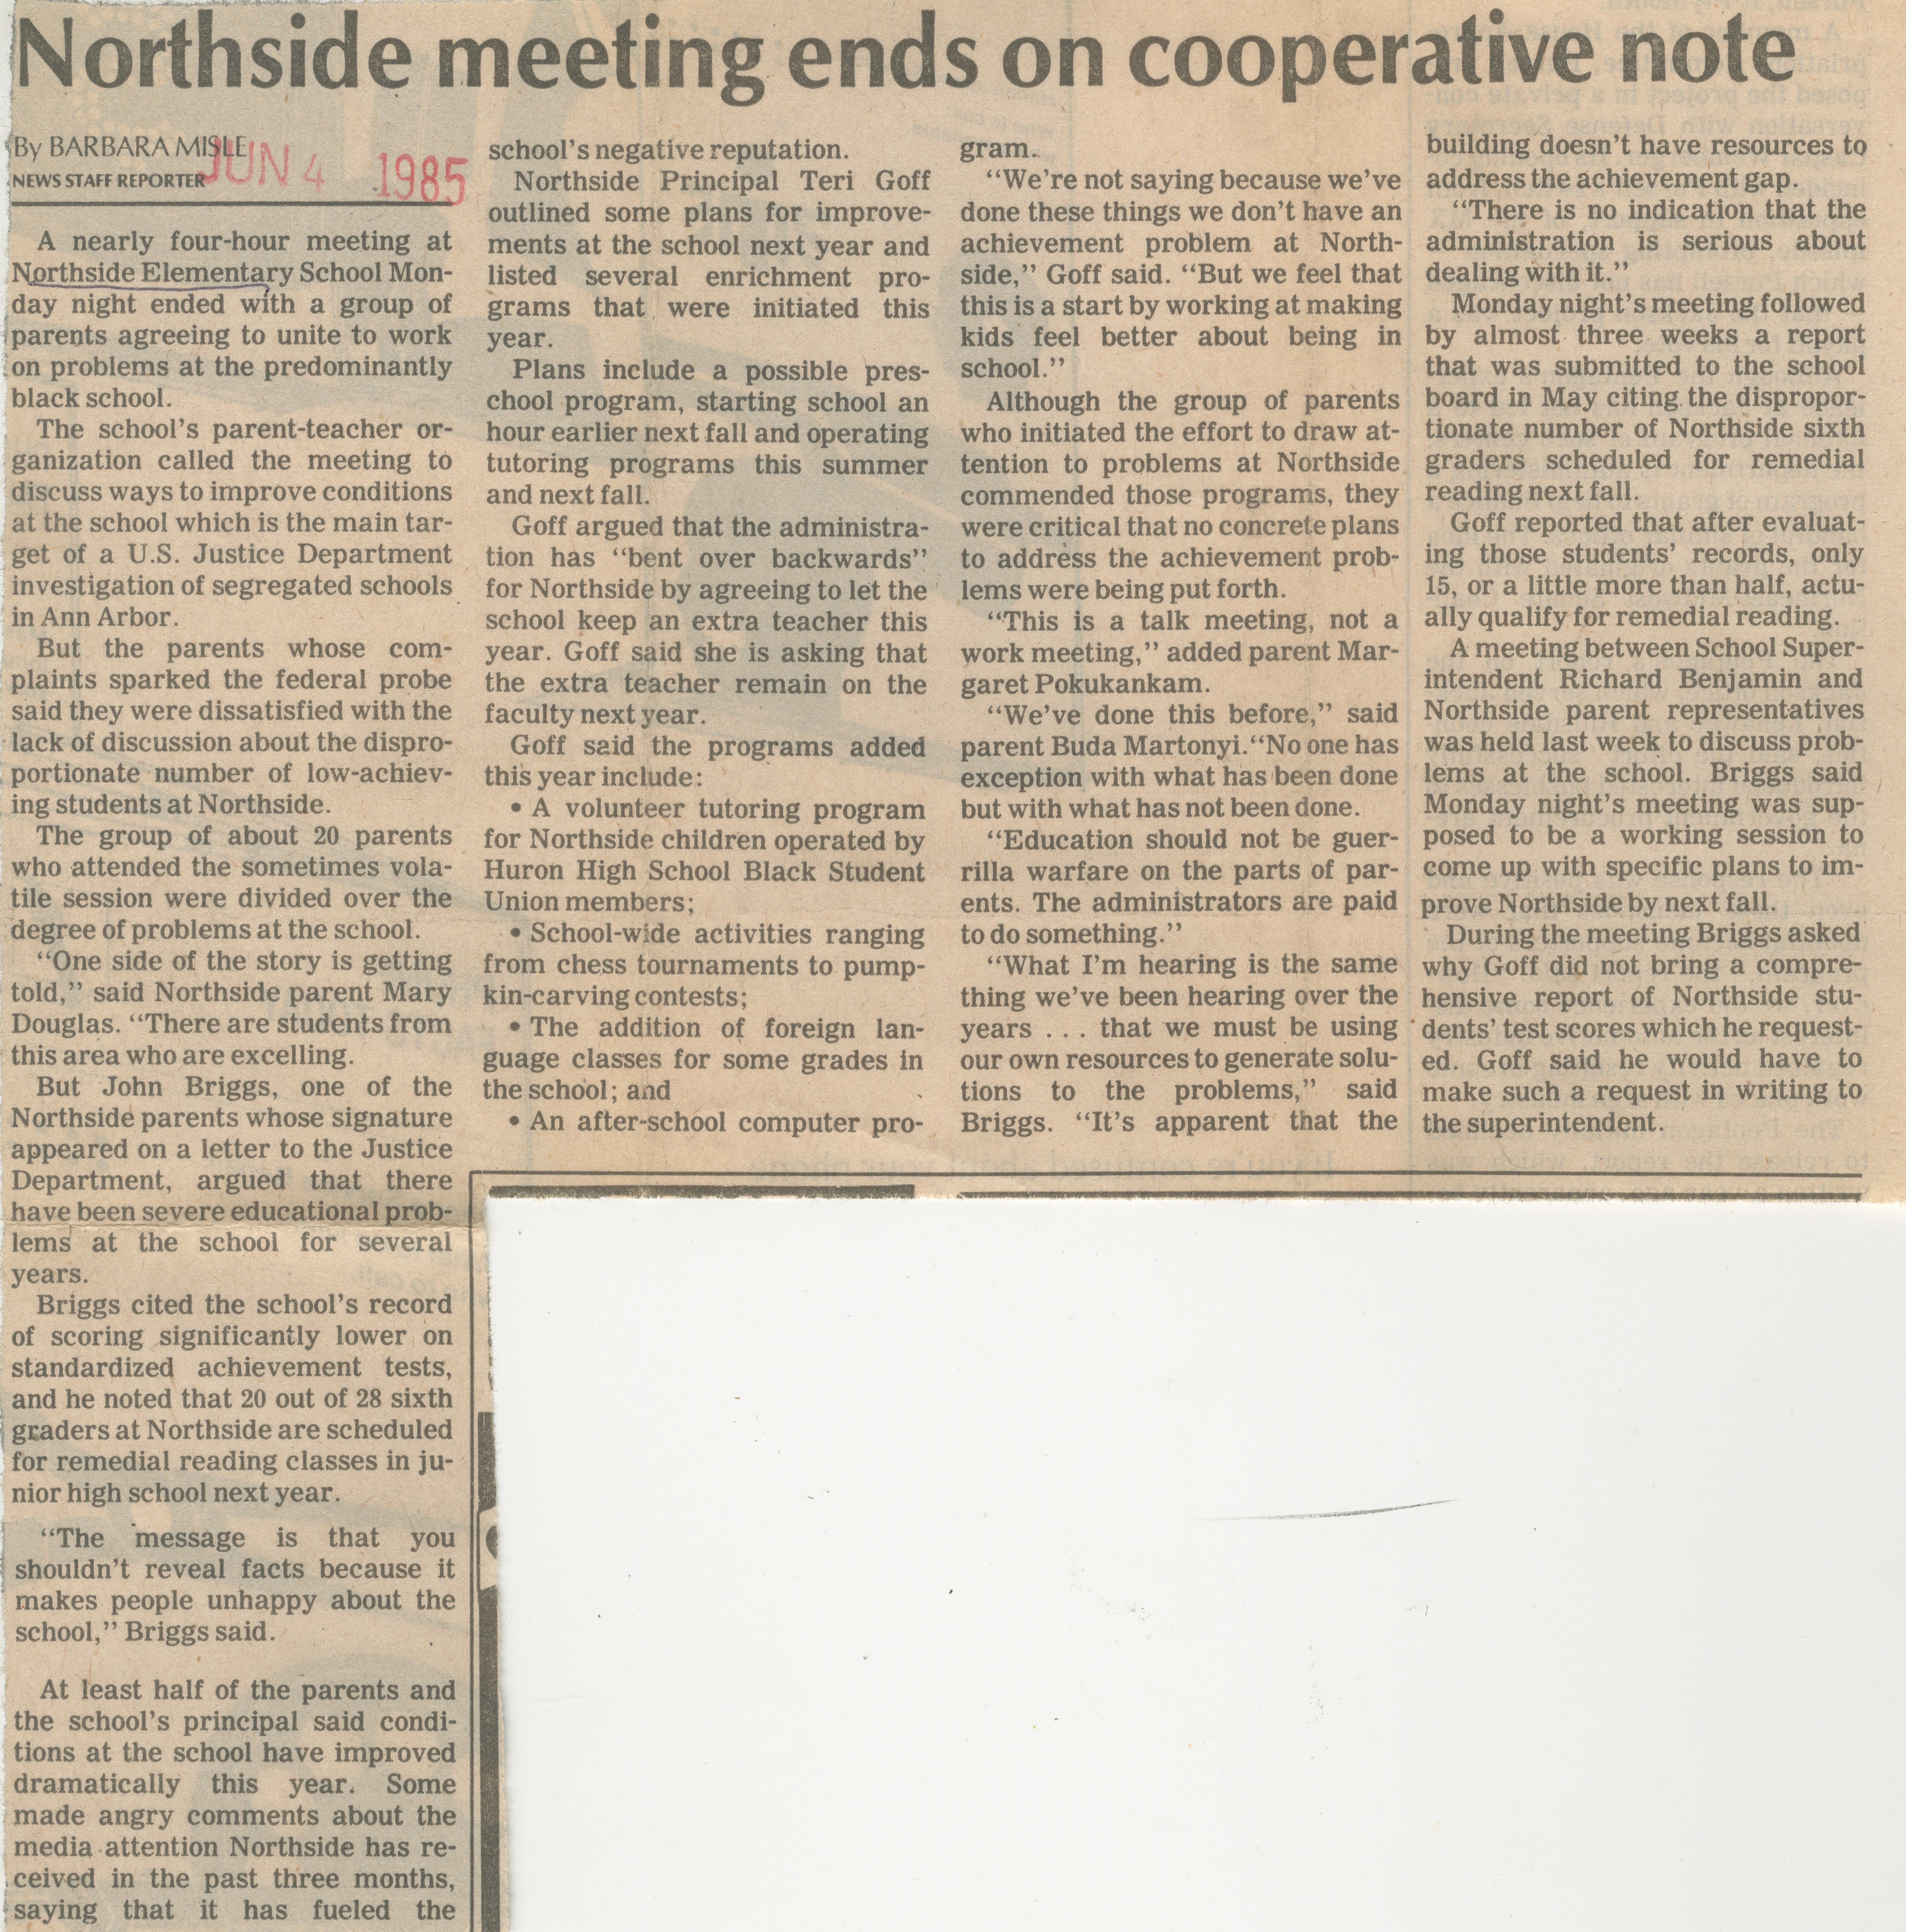 Northside meeting ends on cooperative note image